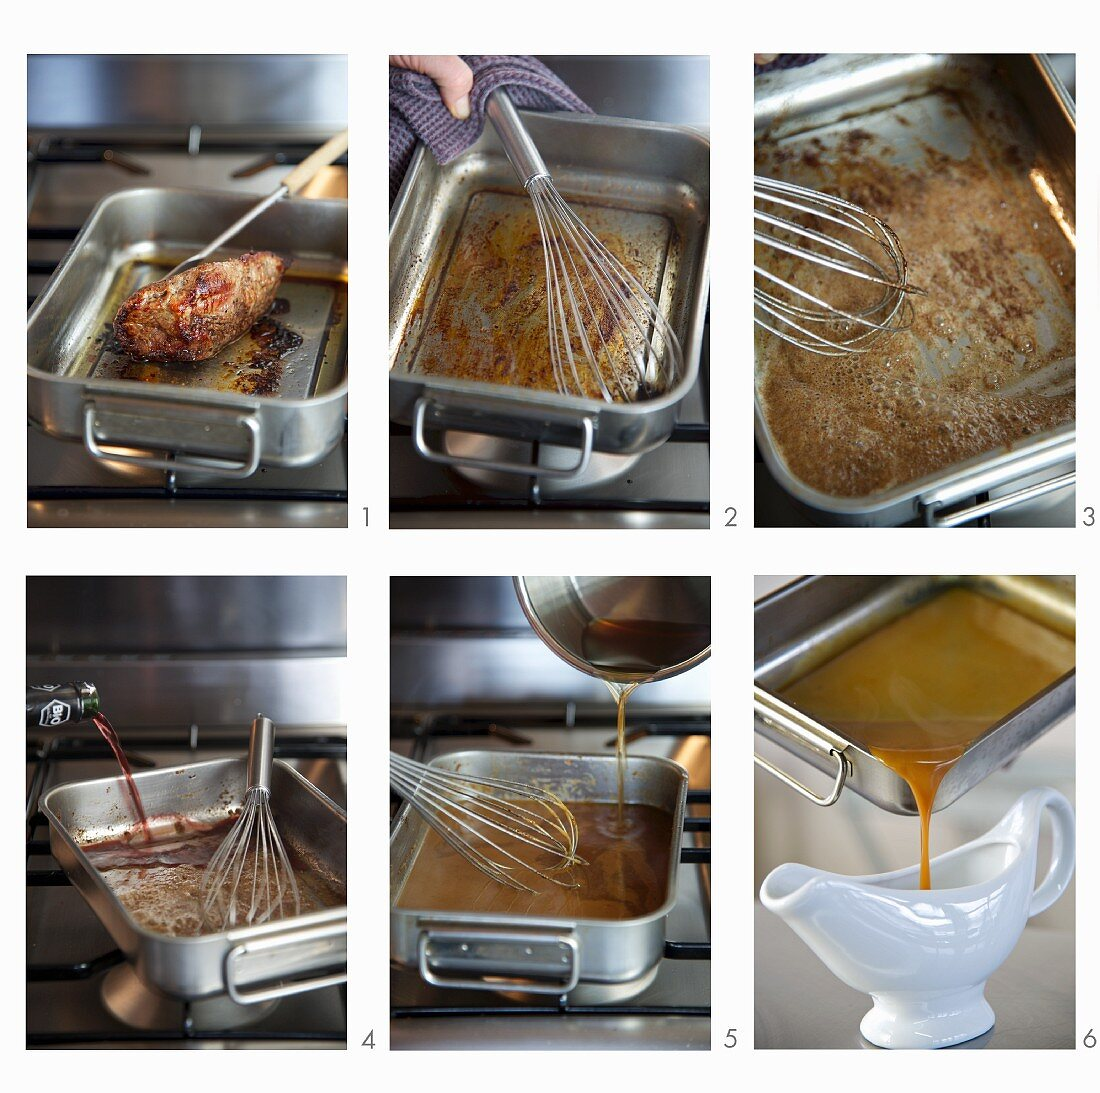 Gravy being made from meat juices